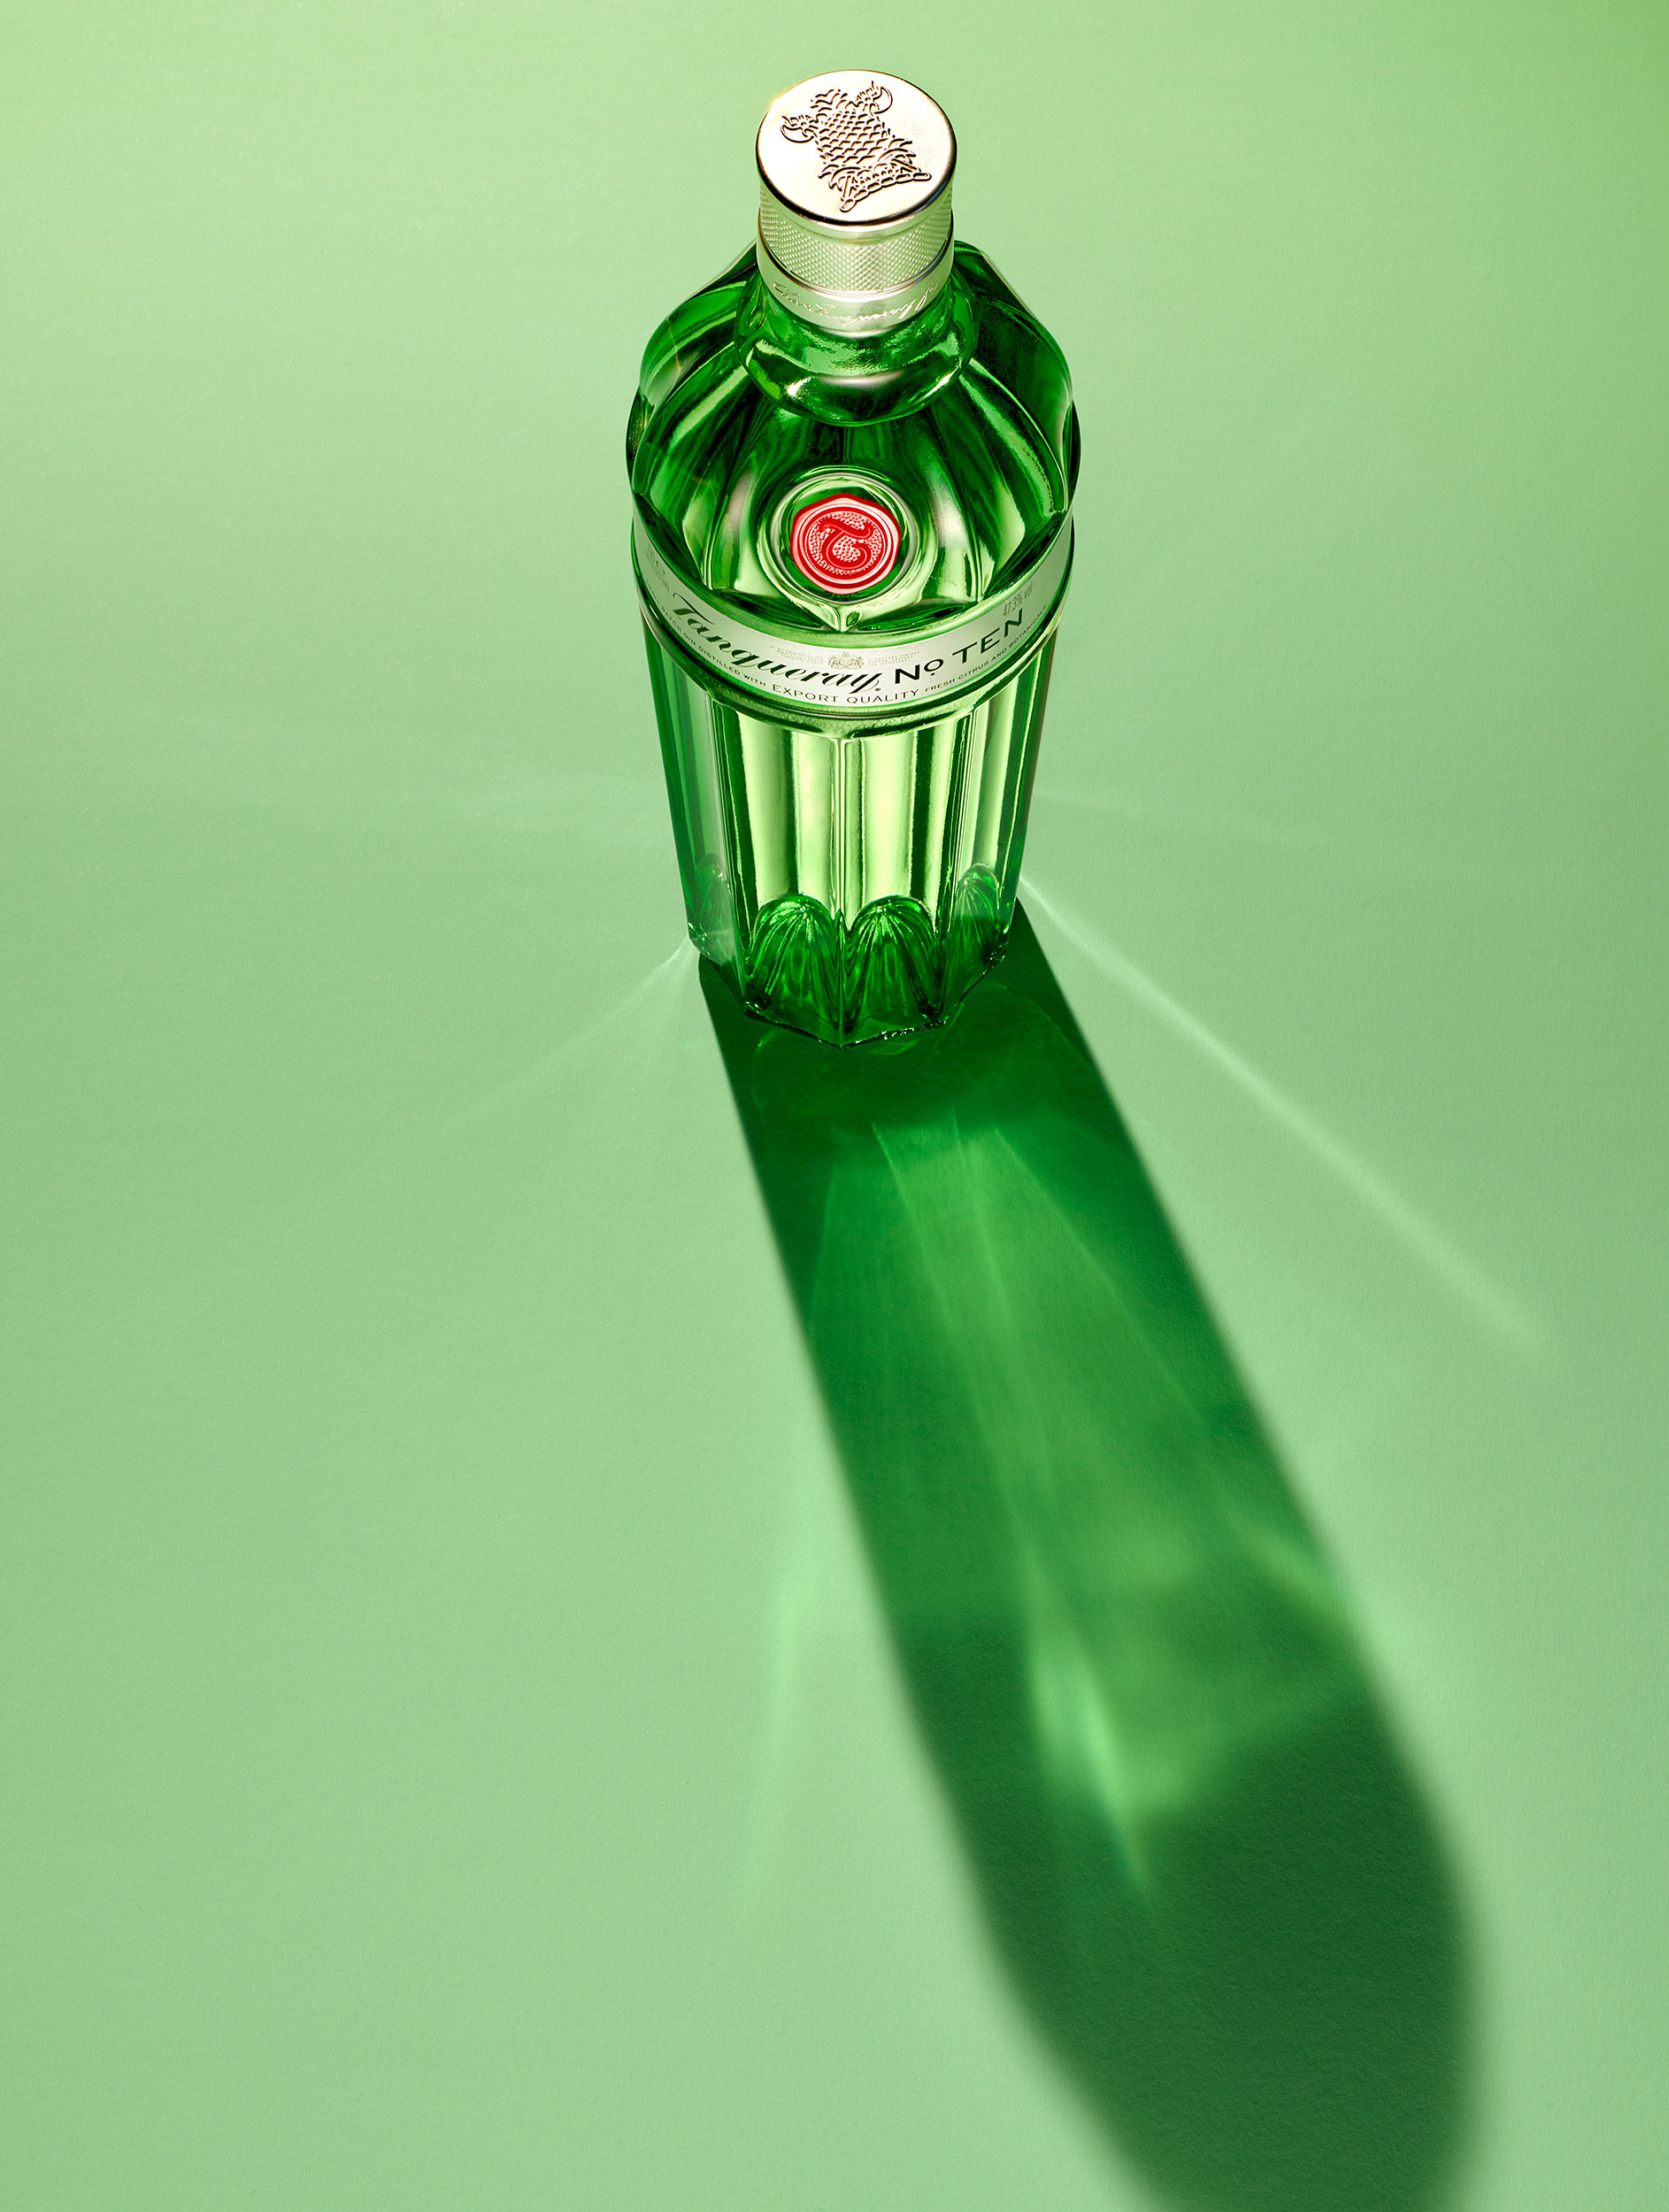 Tanqueray_on_green_Saramorris_web